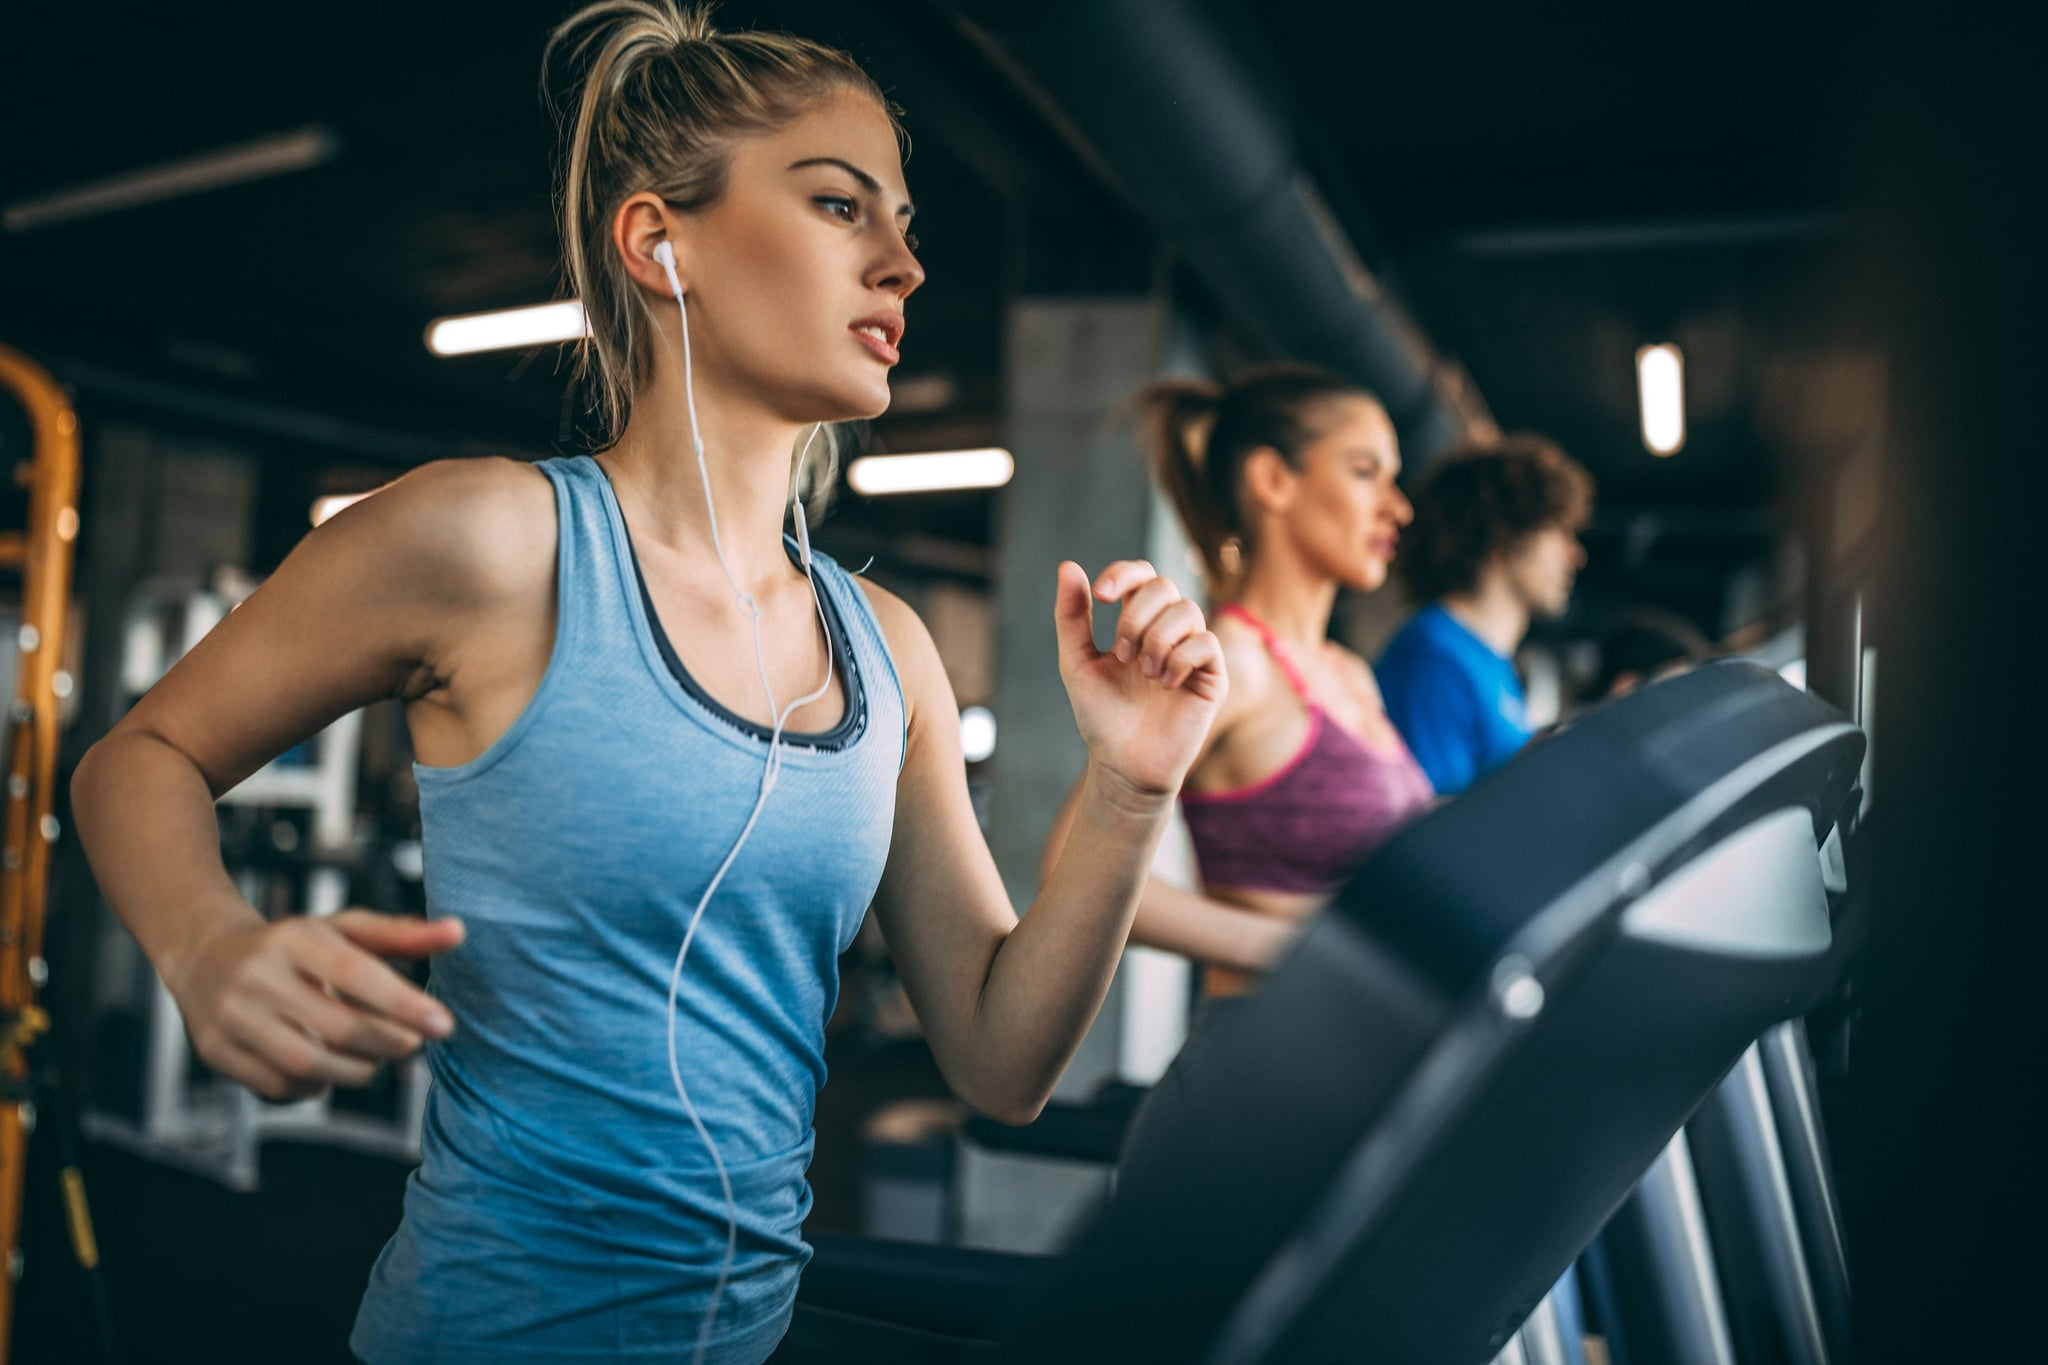 how long does it take to lose weight walking on treadmill